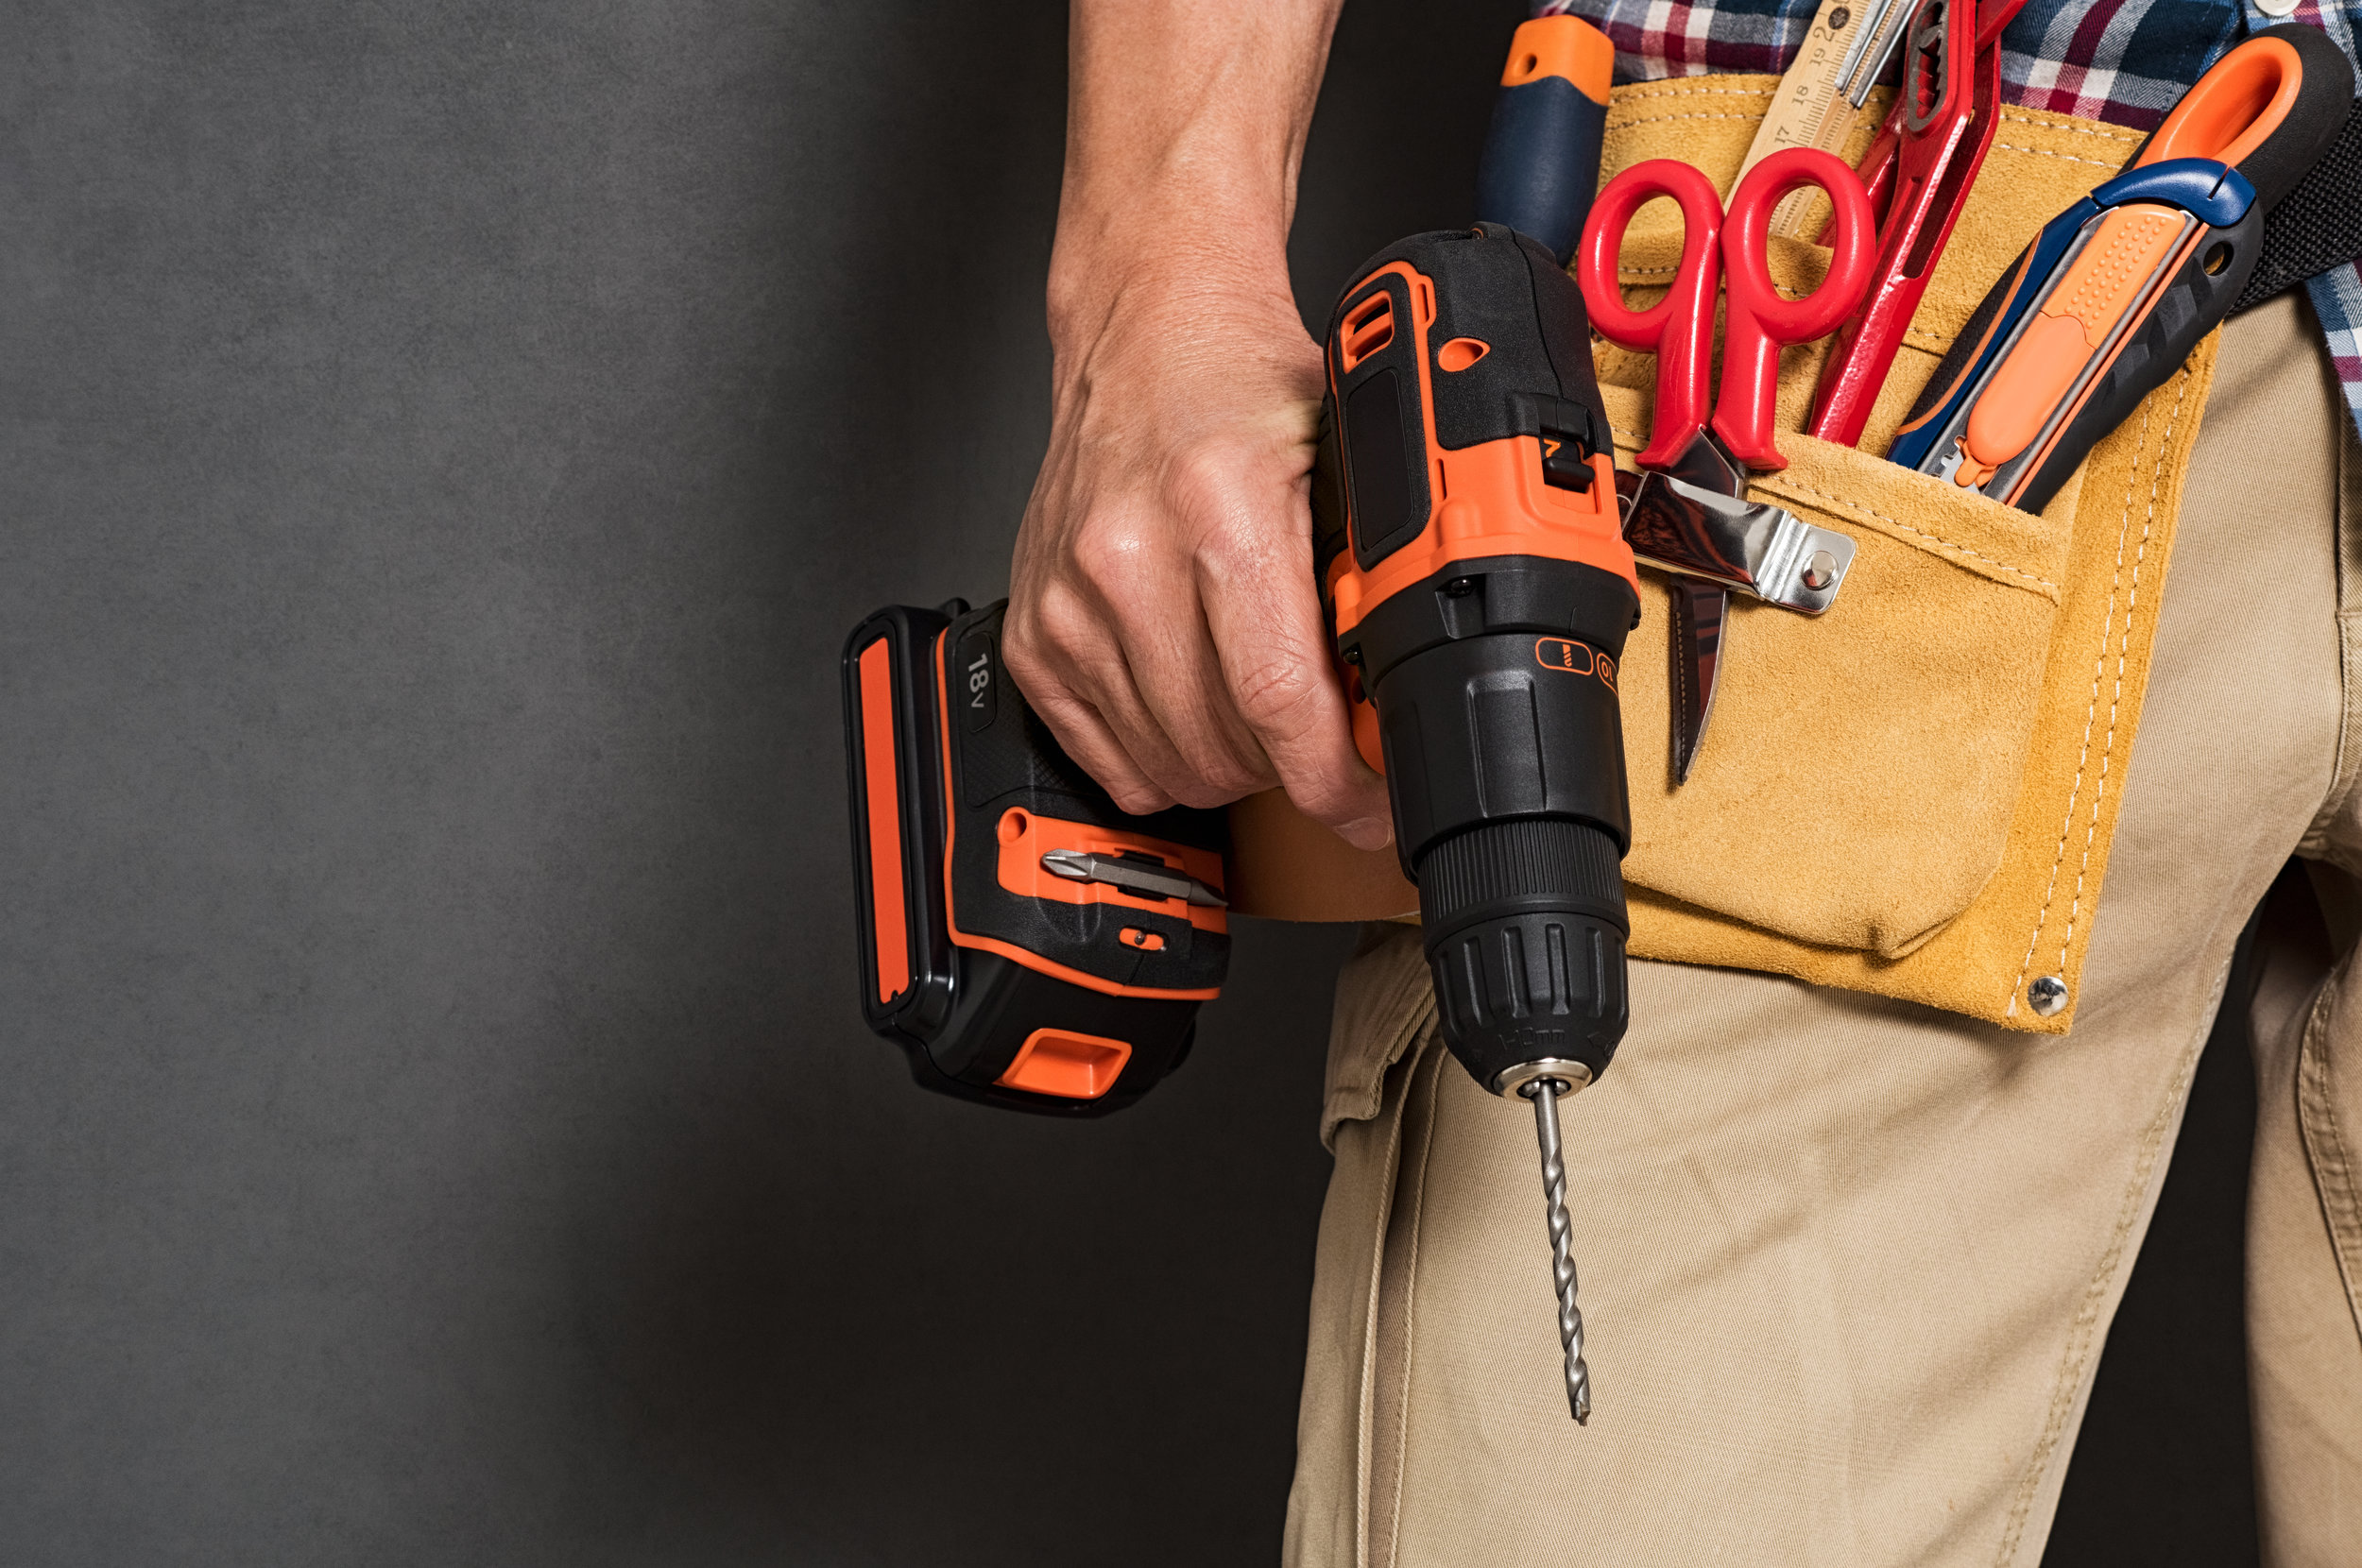 Impact Driver or Drill - Which Do you Need for Scaffolding?